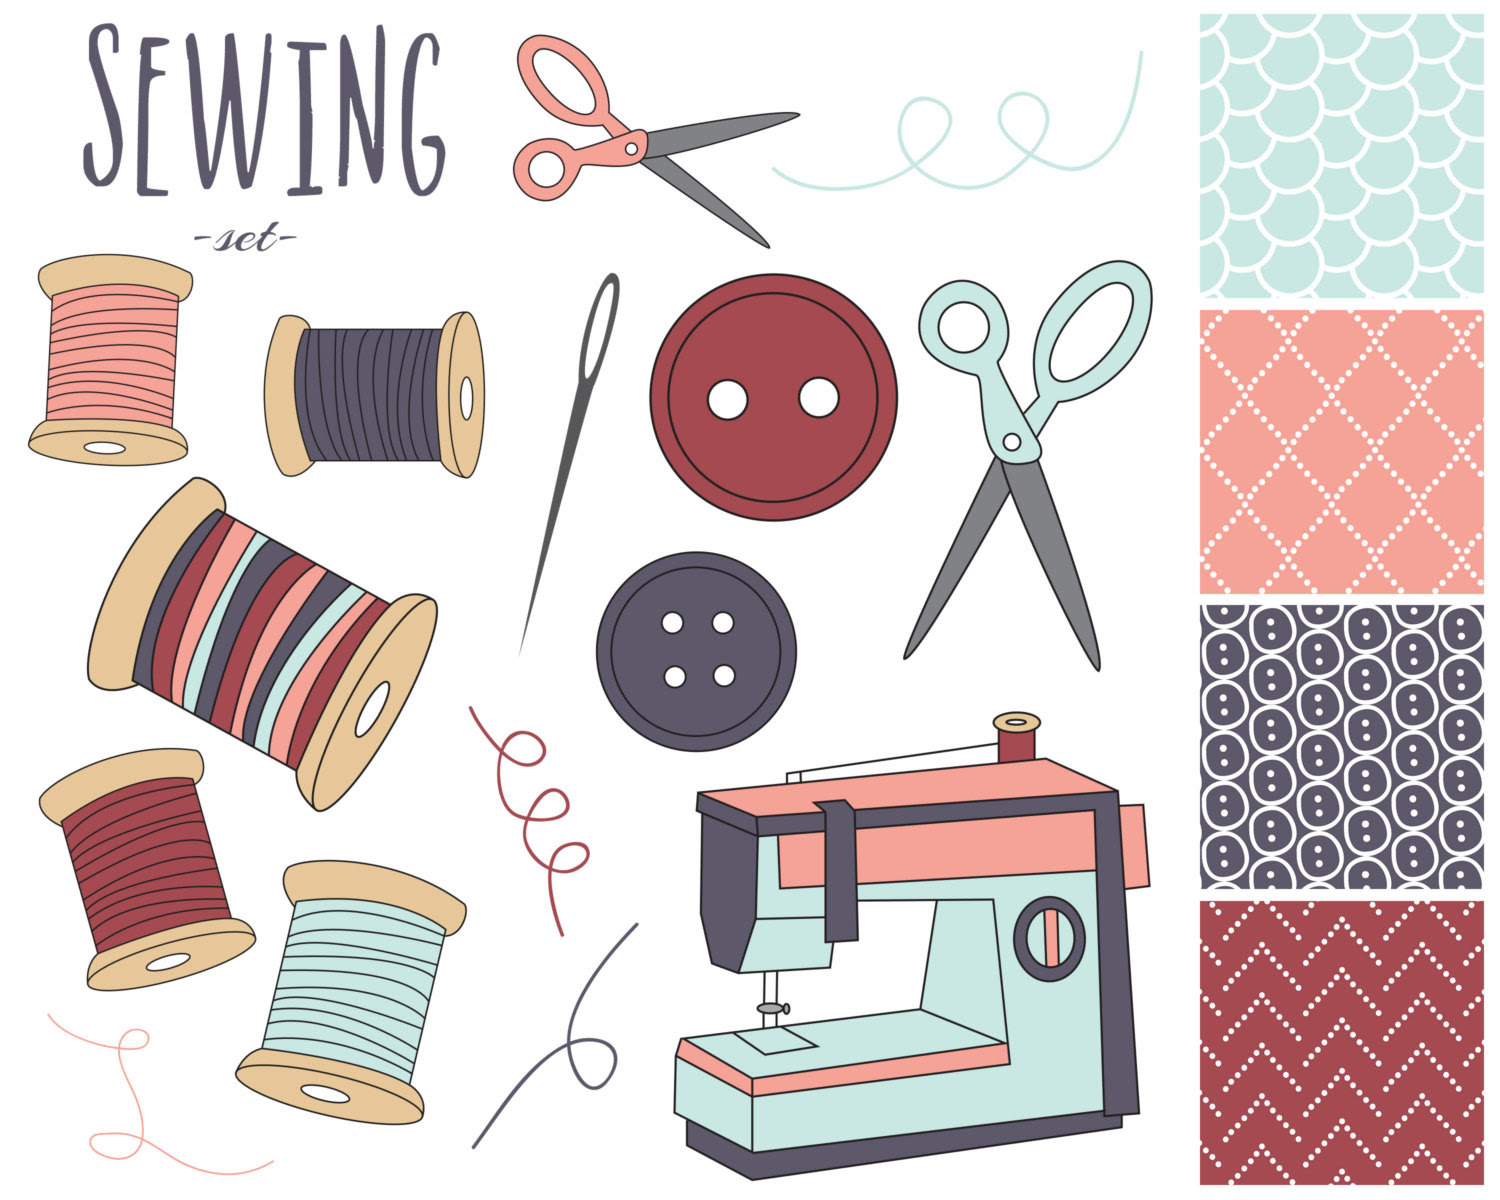 Free Sewing Kit Cliparts, Download Free Clip Art, Free ...